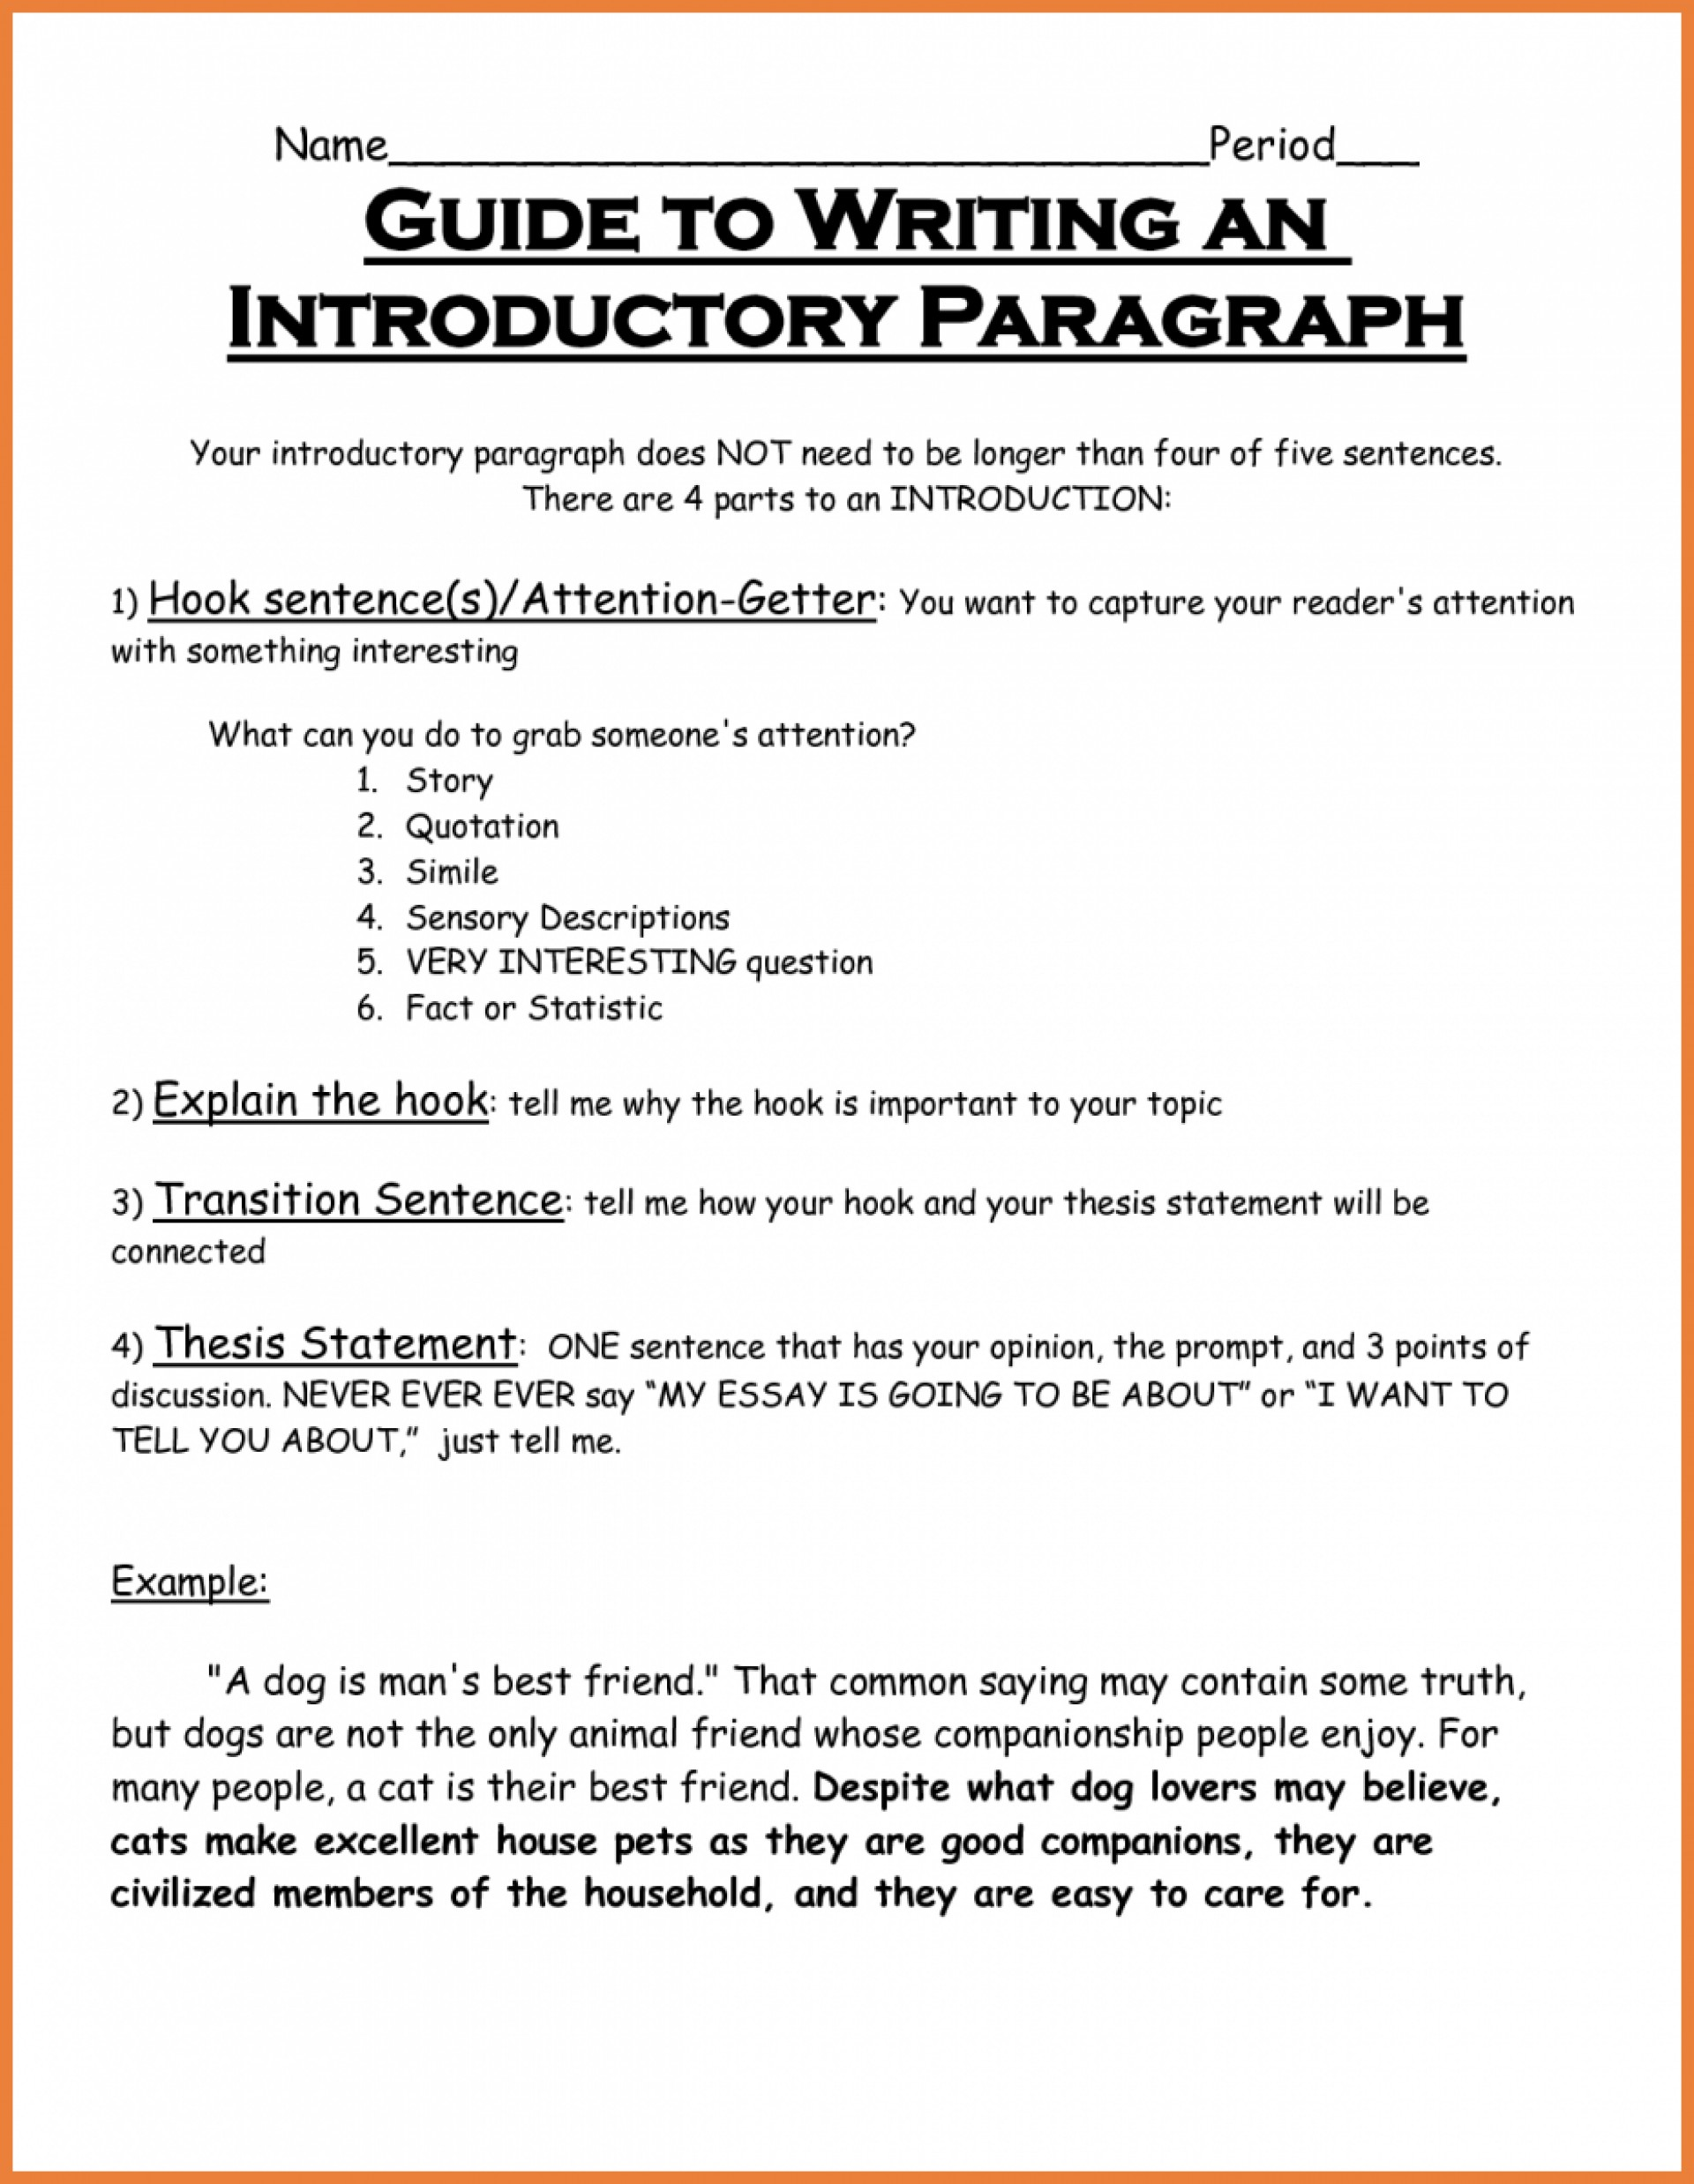 013 How Many Sentences Are In Essay Best A Much Make Paragraph An 250 Word 1920